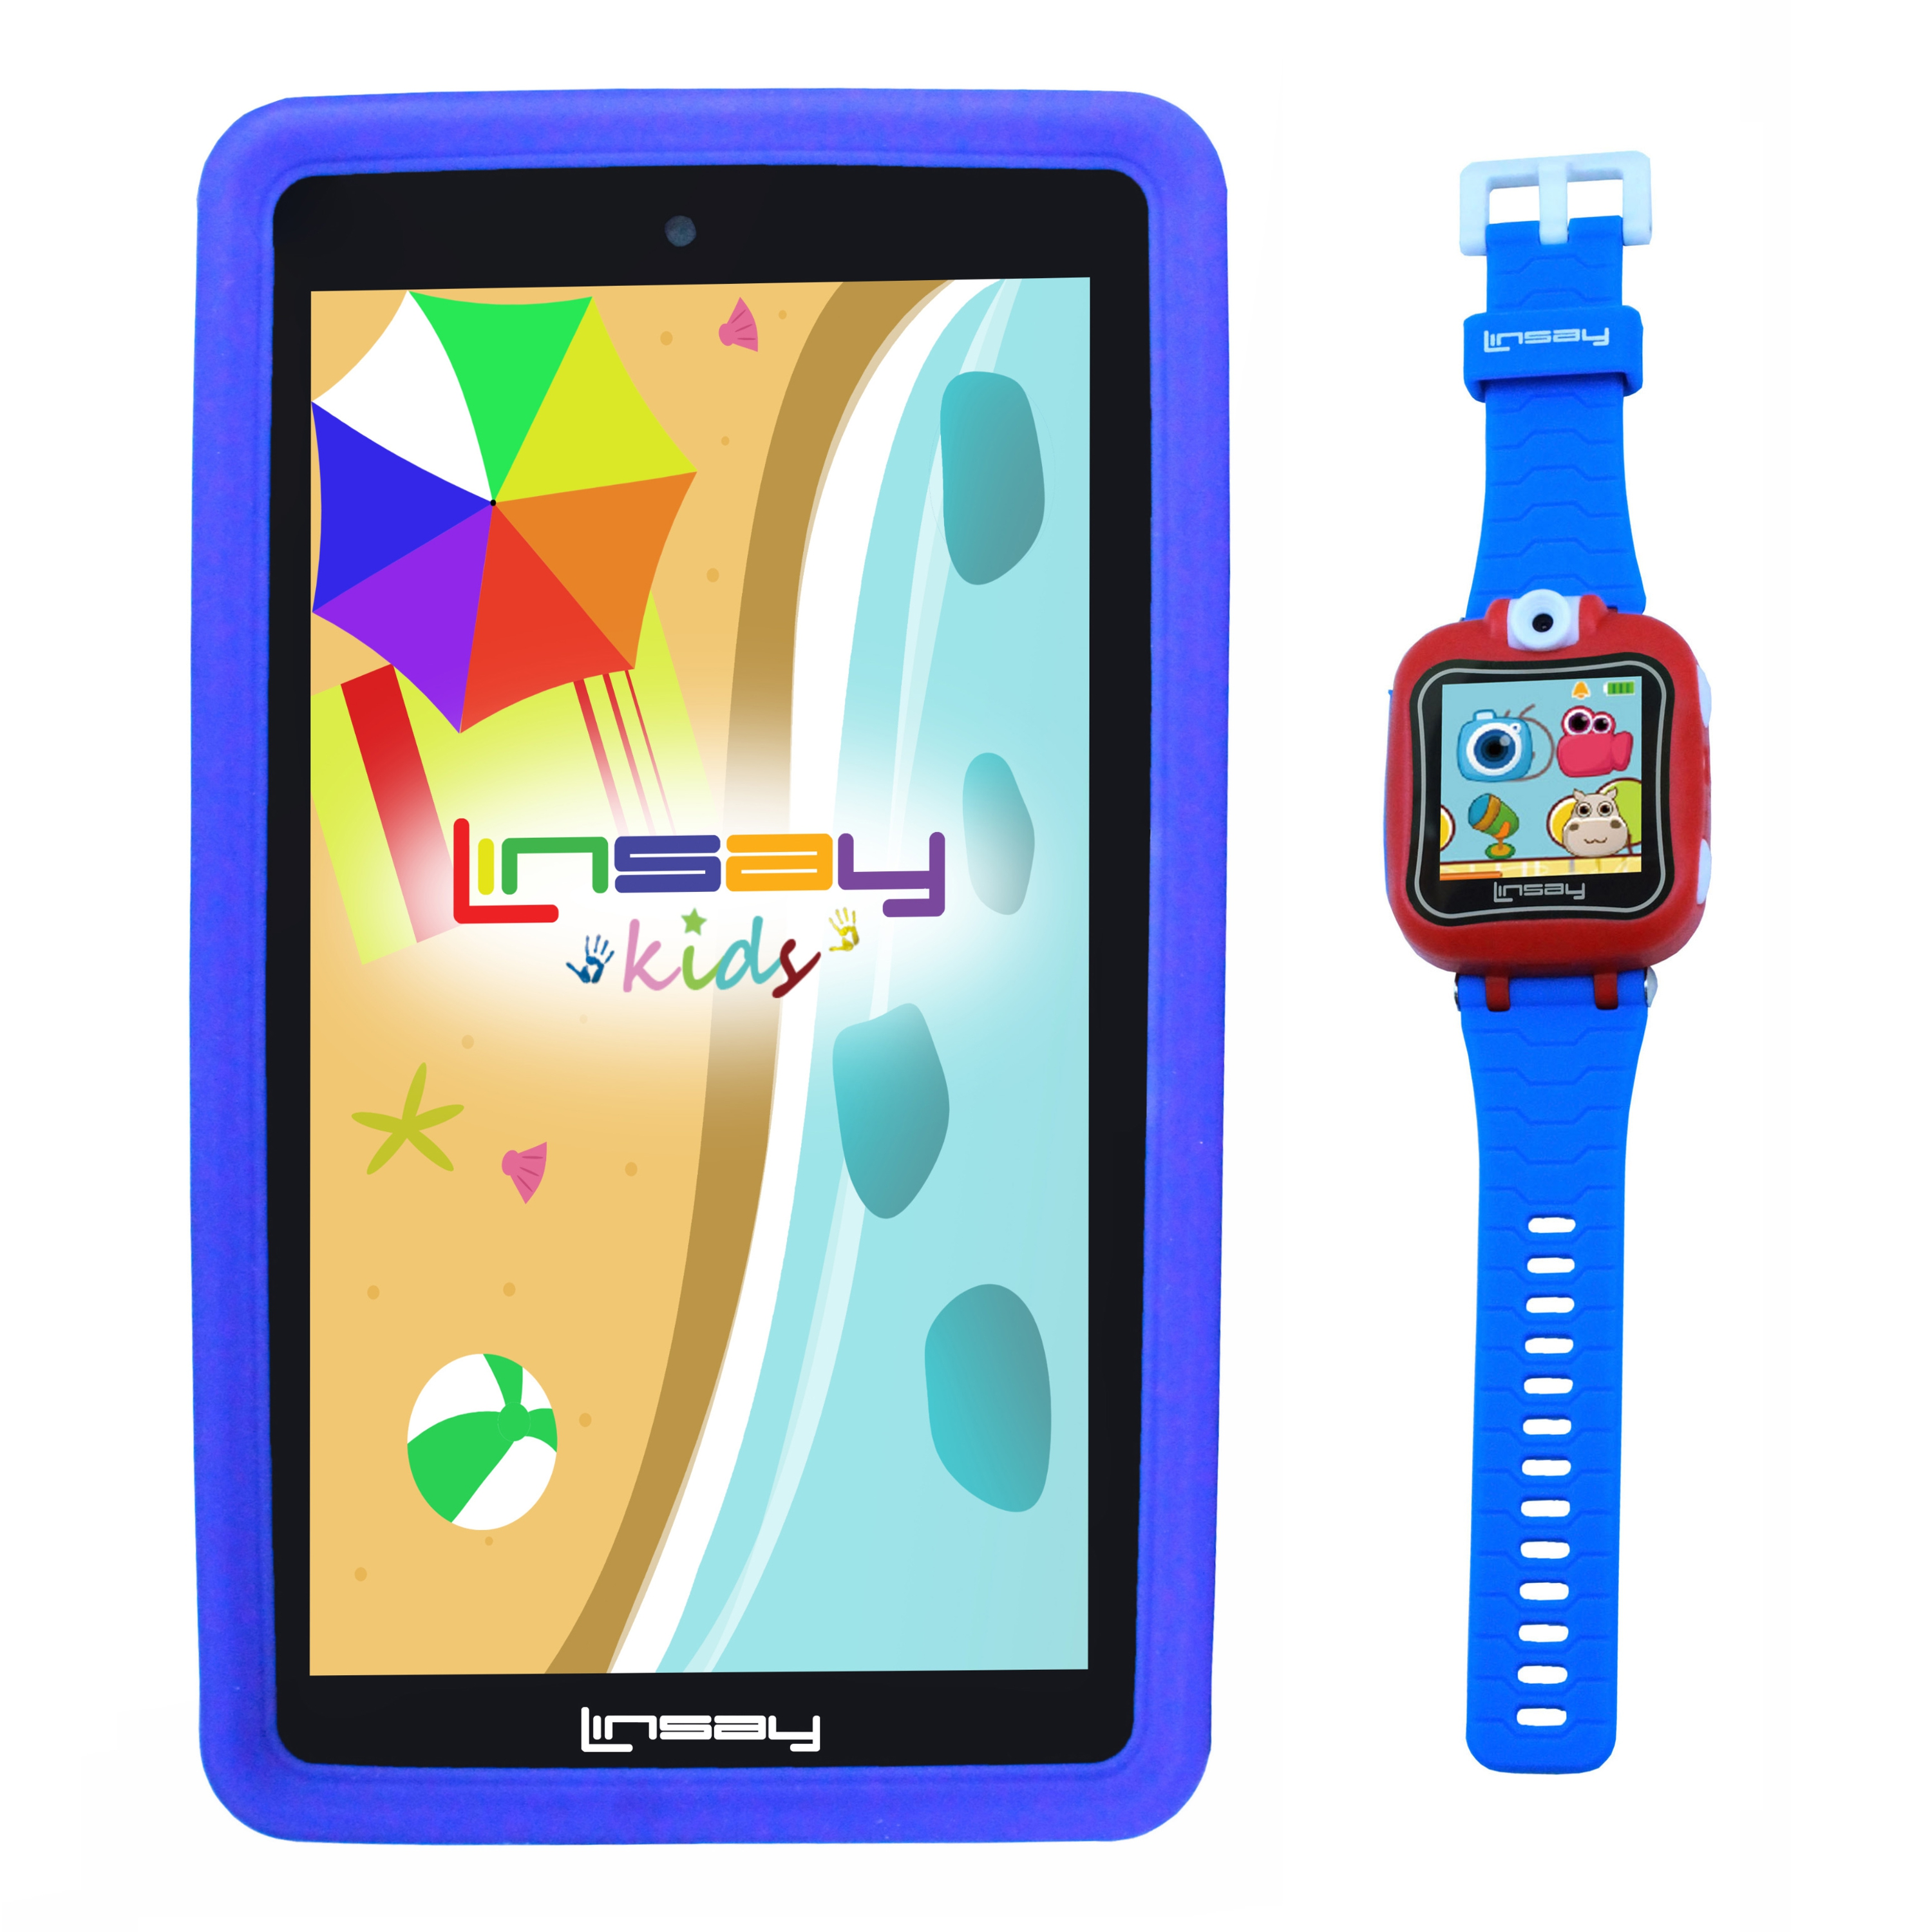 LINSAY 7 1280x800 IPS Screen Kids Tablet 8GB with Smart Watch Android 4.4 (KitKat) Operating System